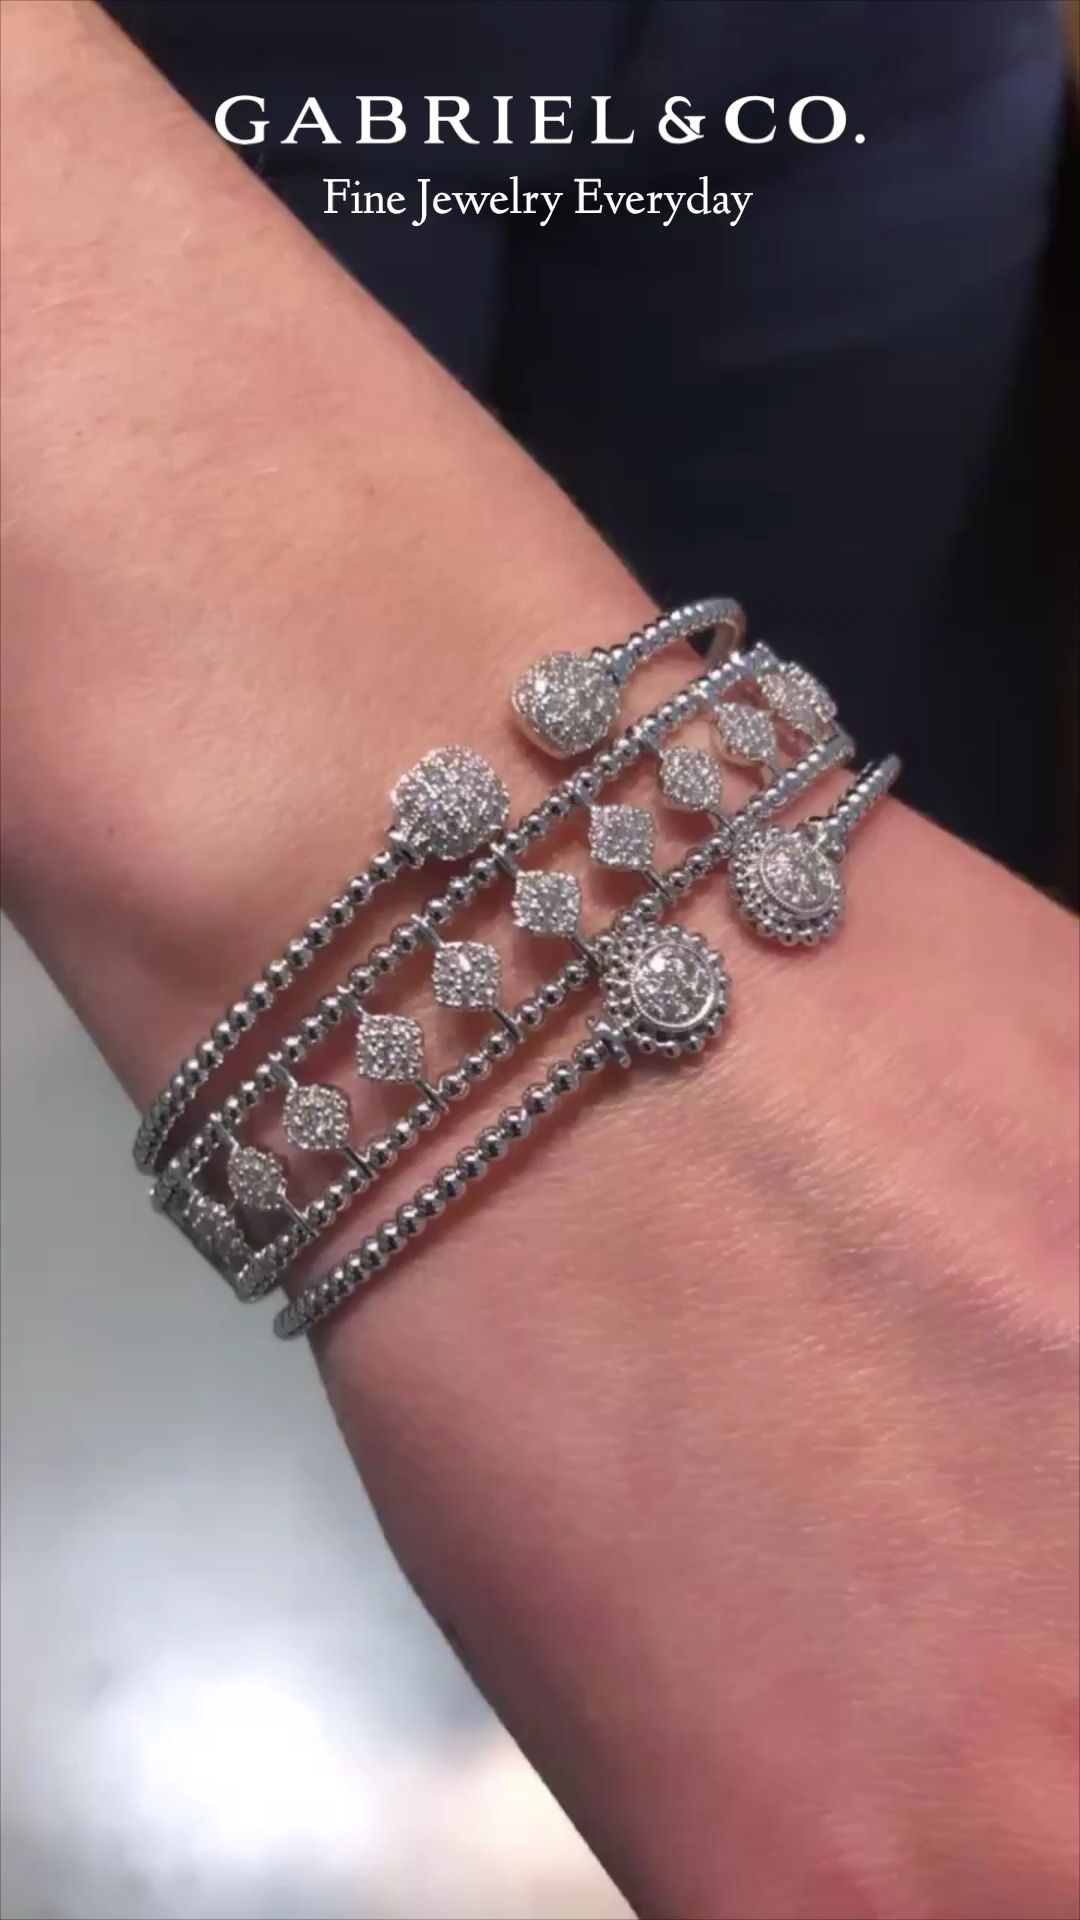 7720d163aa281 Stay on trend with stylish Gabriel & Co. charm bracelets, cuffs and ...